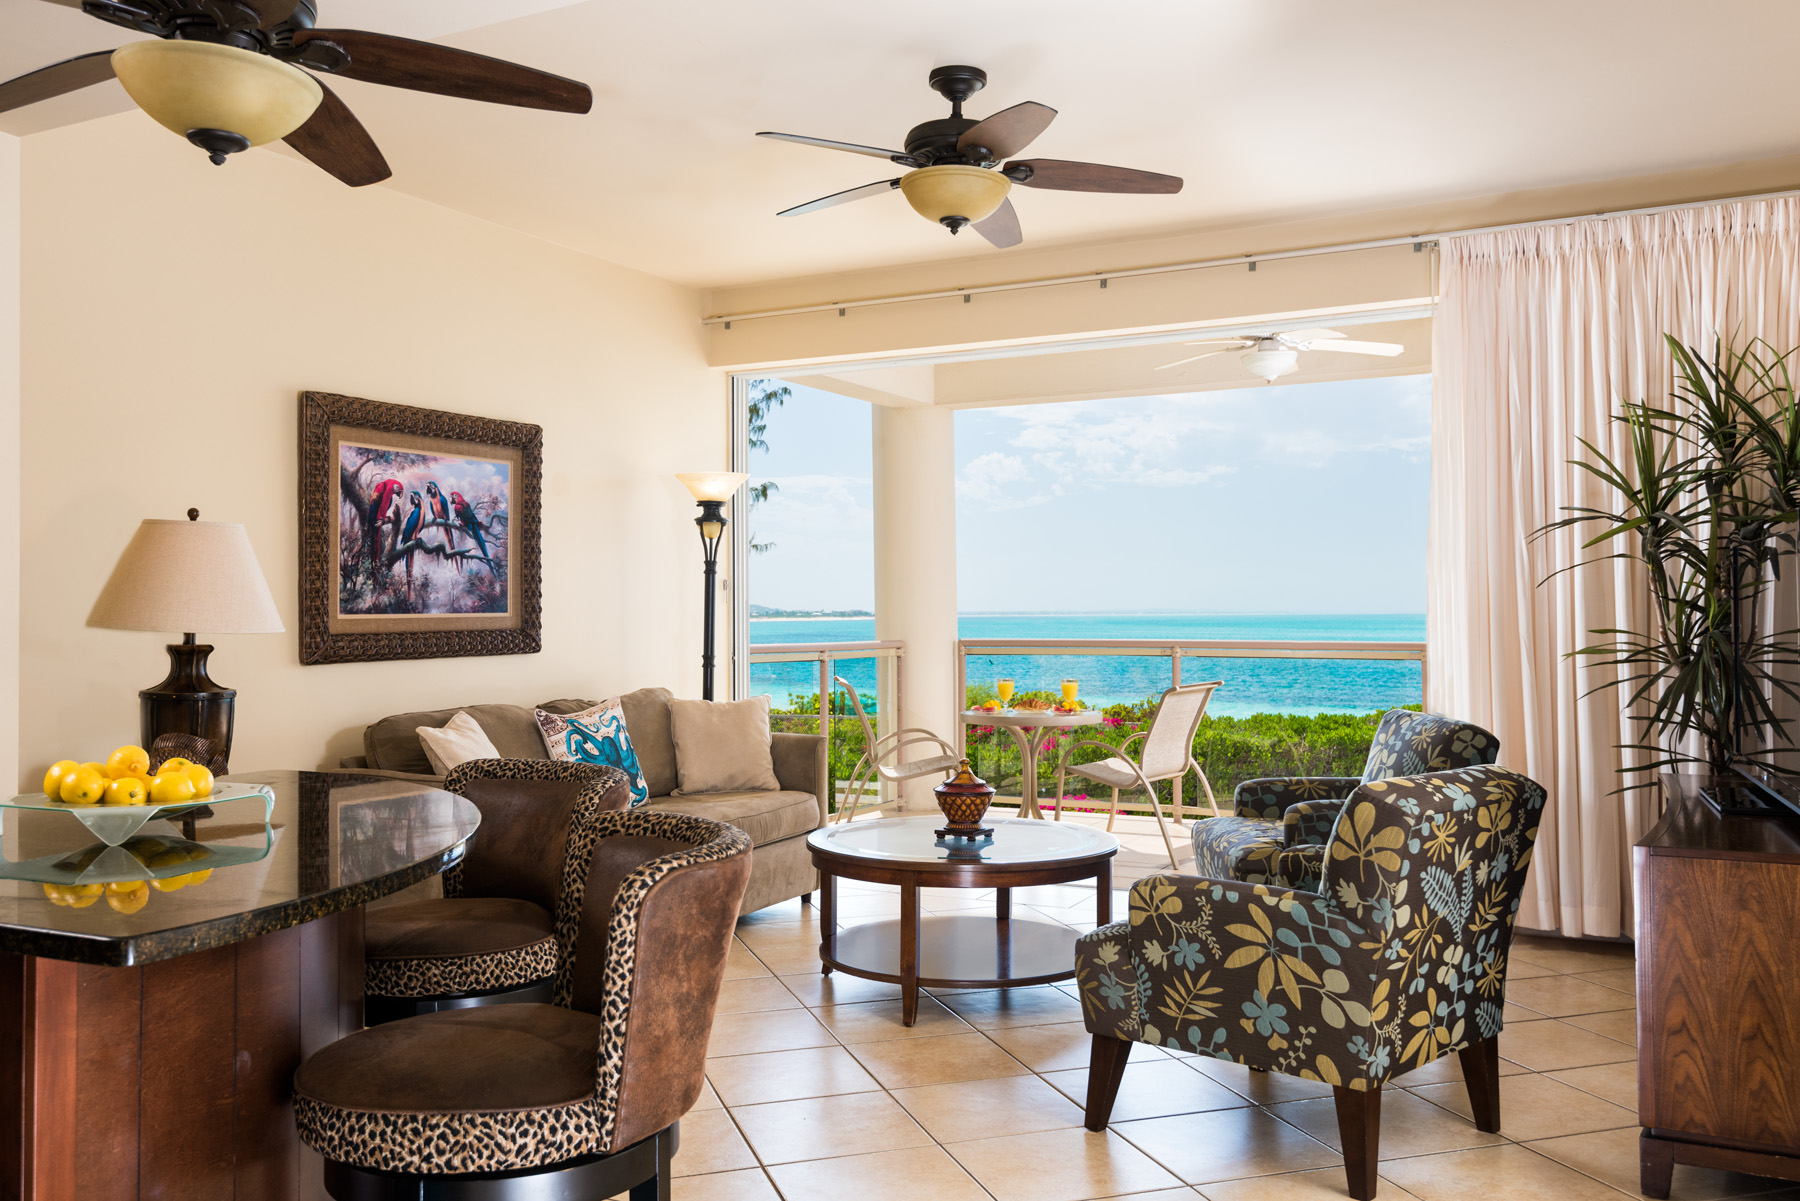 Condominium for Sale at Coral Gardens - Suite 4202 Beachfront Grace Bay, Providenciales, TC Turks And Caicos Islands